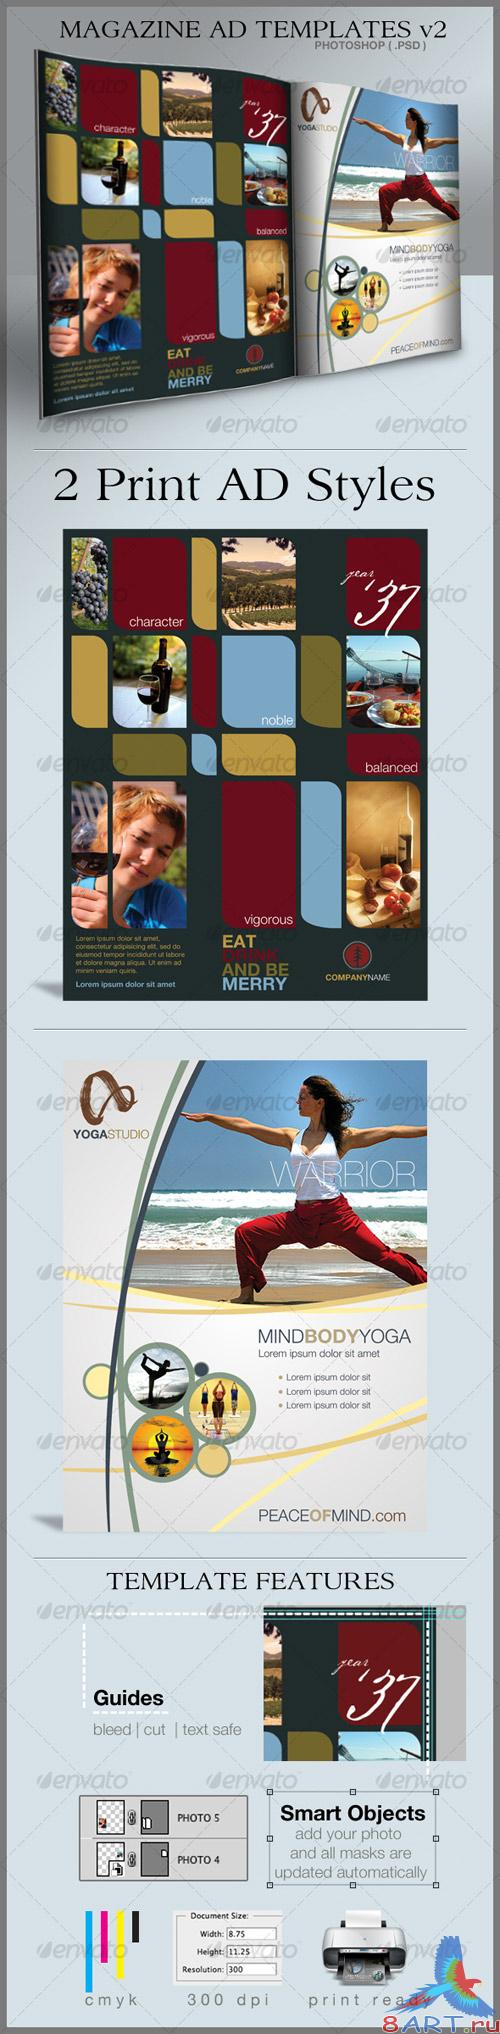 Print Ad Templates v2 - GraphicRiver